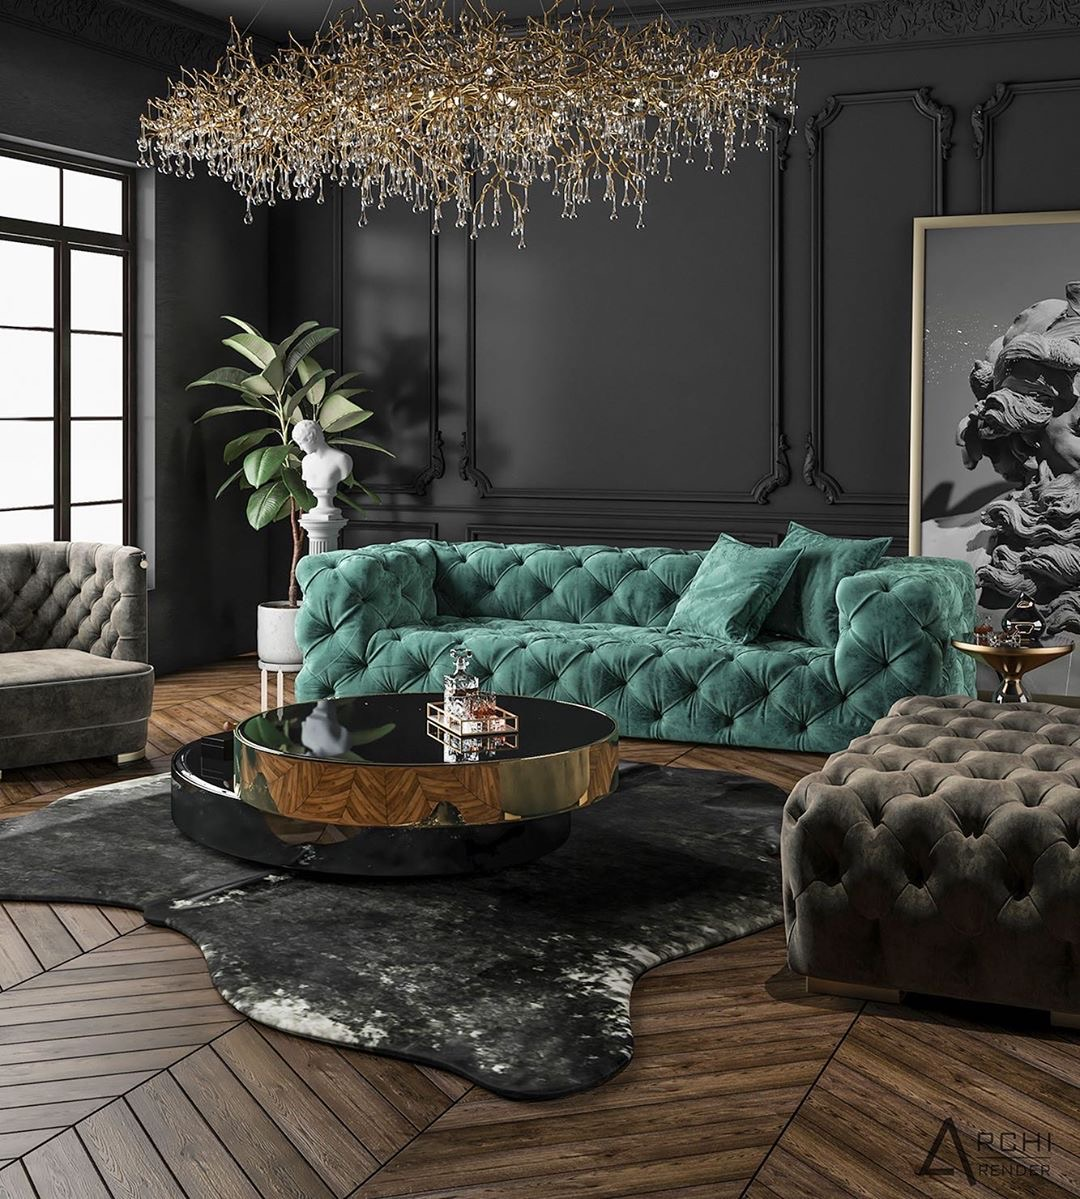 Home Design Et Deco image about luxury in ? home design?°•°❀ℳℴ?????